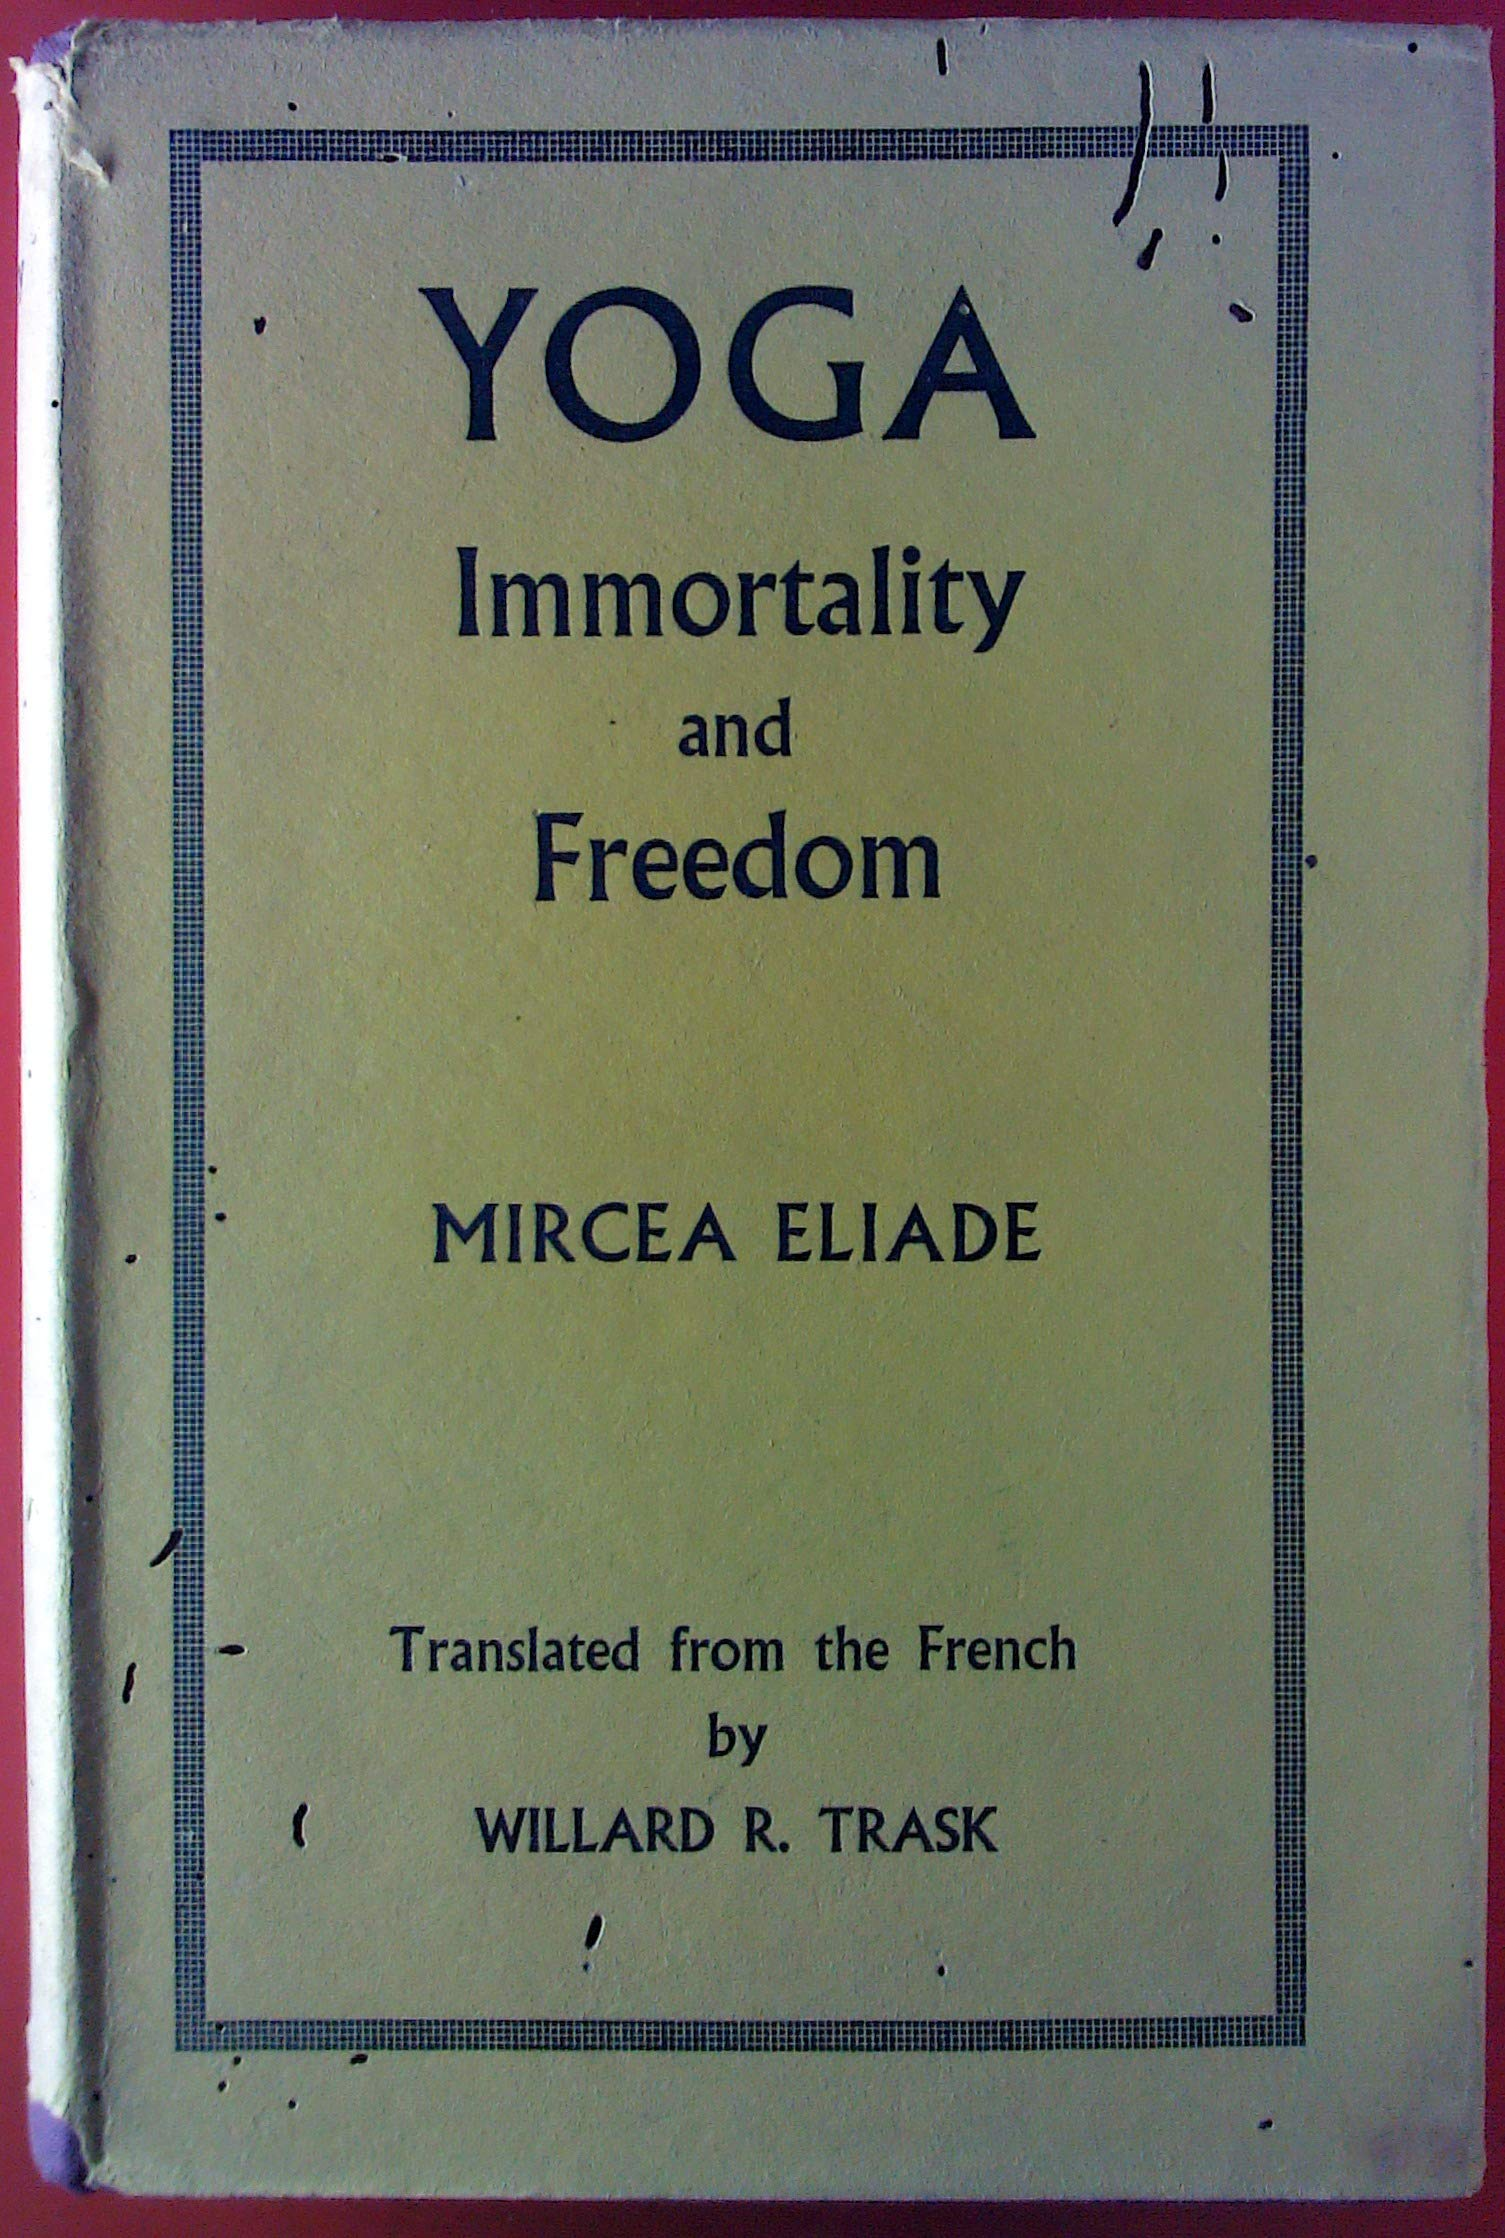 Yoga: Immortality and Freedom: Mircea Eliade, Williard D ...